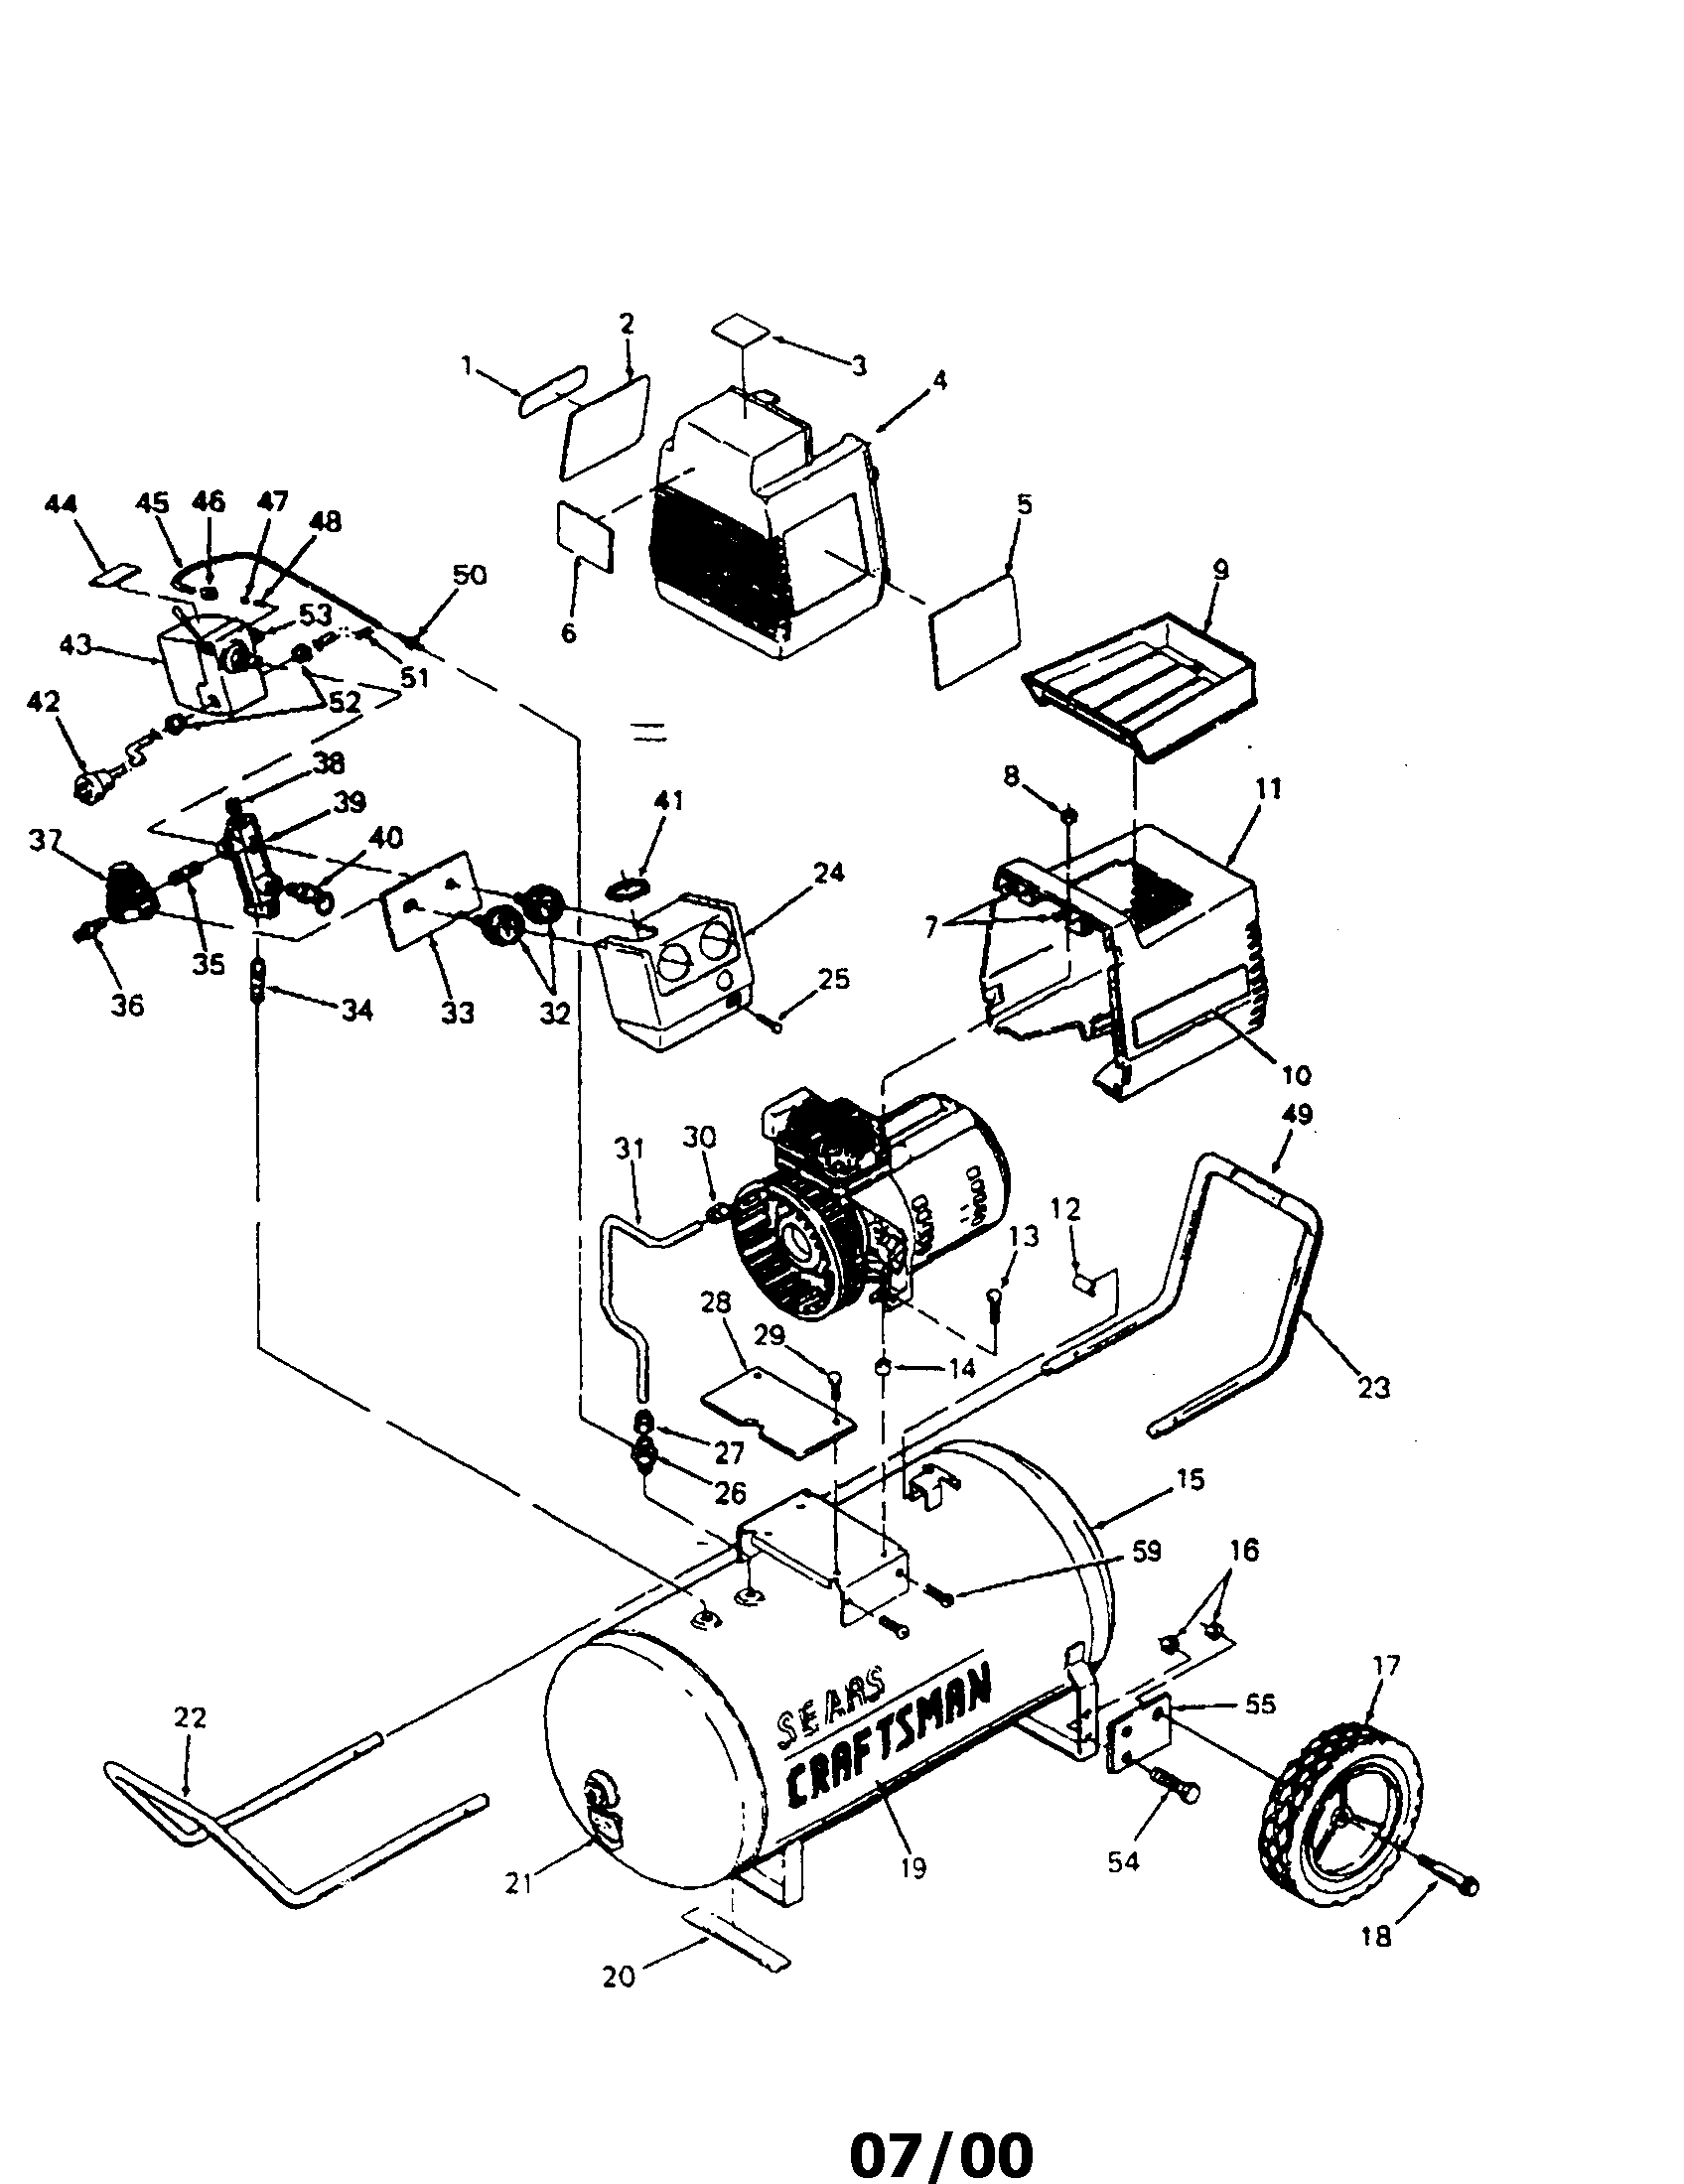 Craftsman Lt4000 917 255450 Wiring Diagram 42 Sears 26 Horse Kohler Engine Electrical 919153331 Compressor Parts For Air Lt3000 At